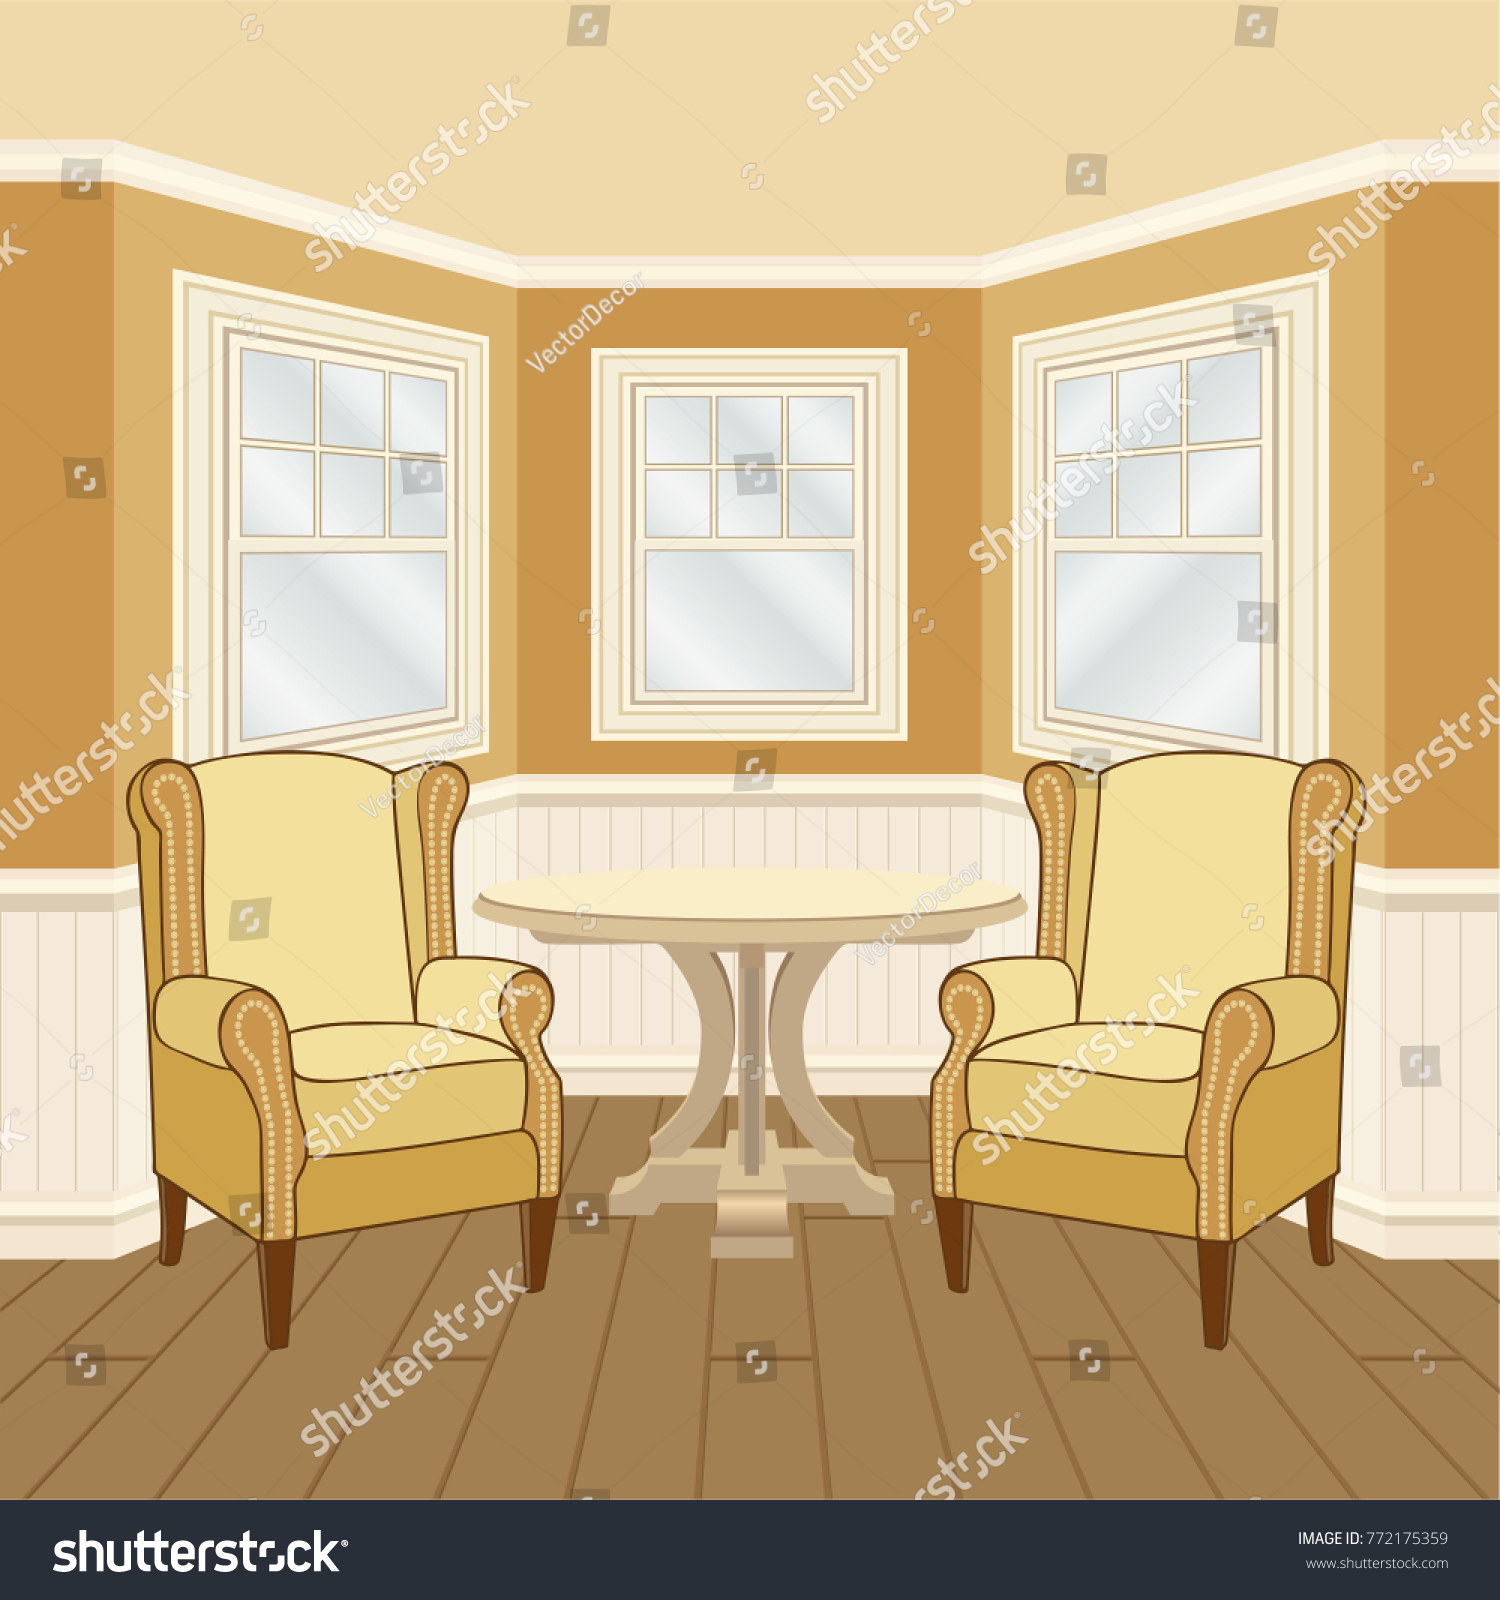 Classic Room Interior Oriel Windows Walls Stock Vector (Royalty Free ...